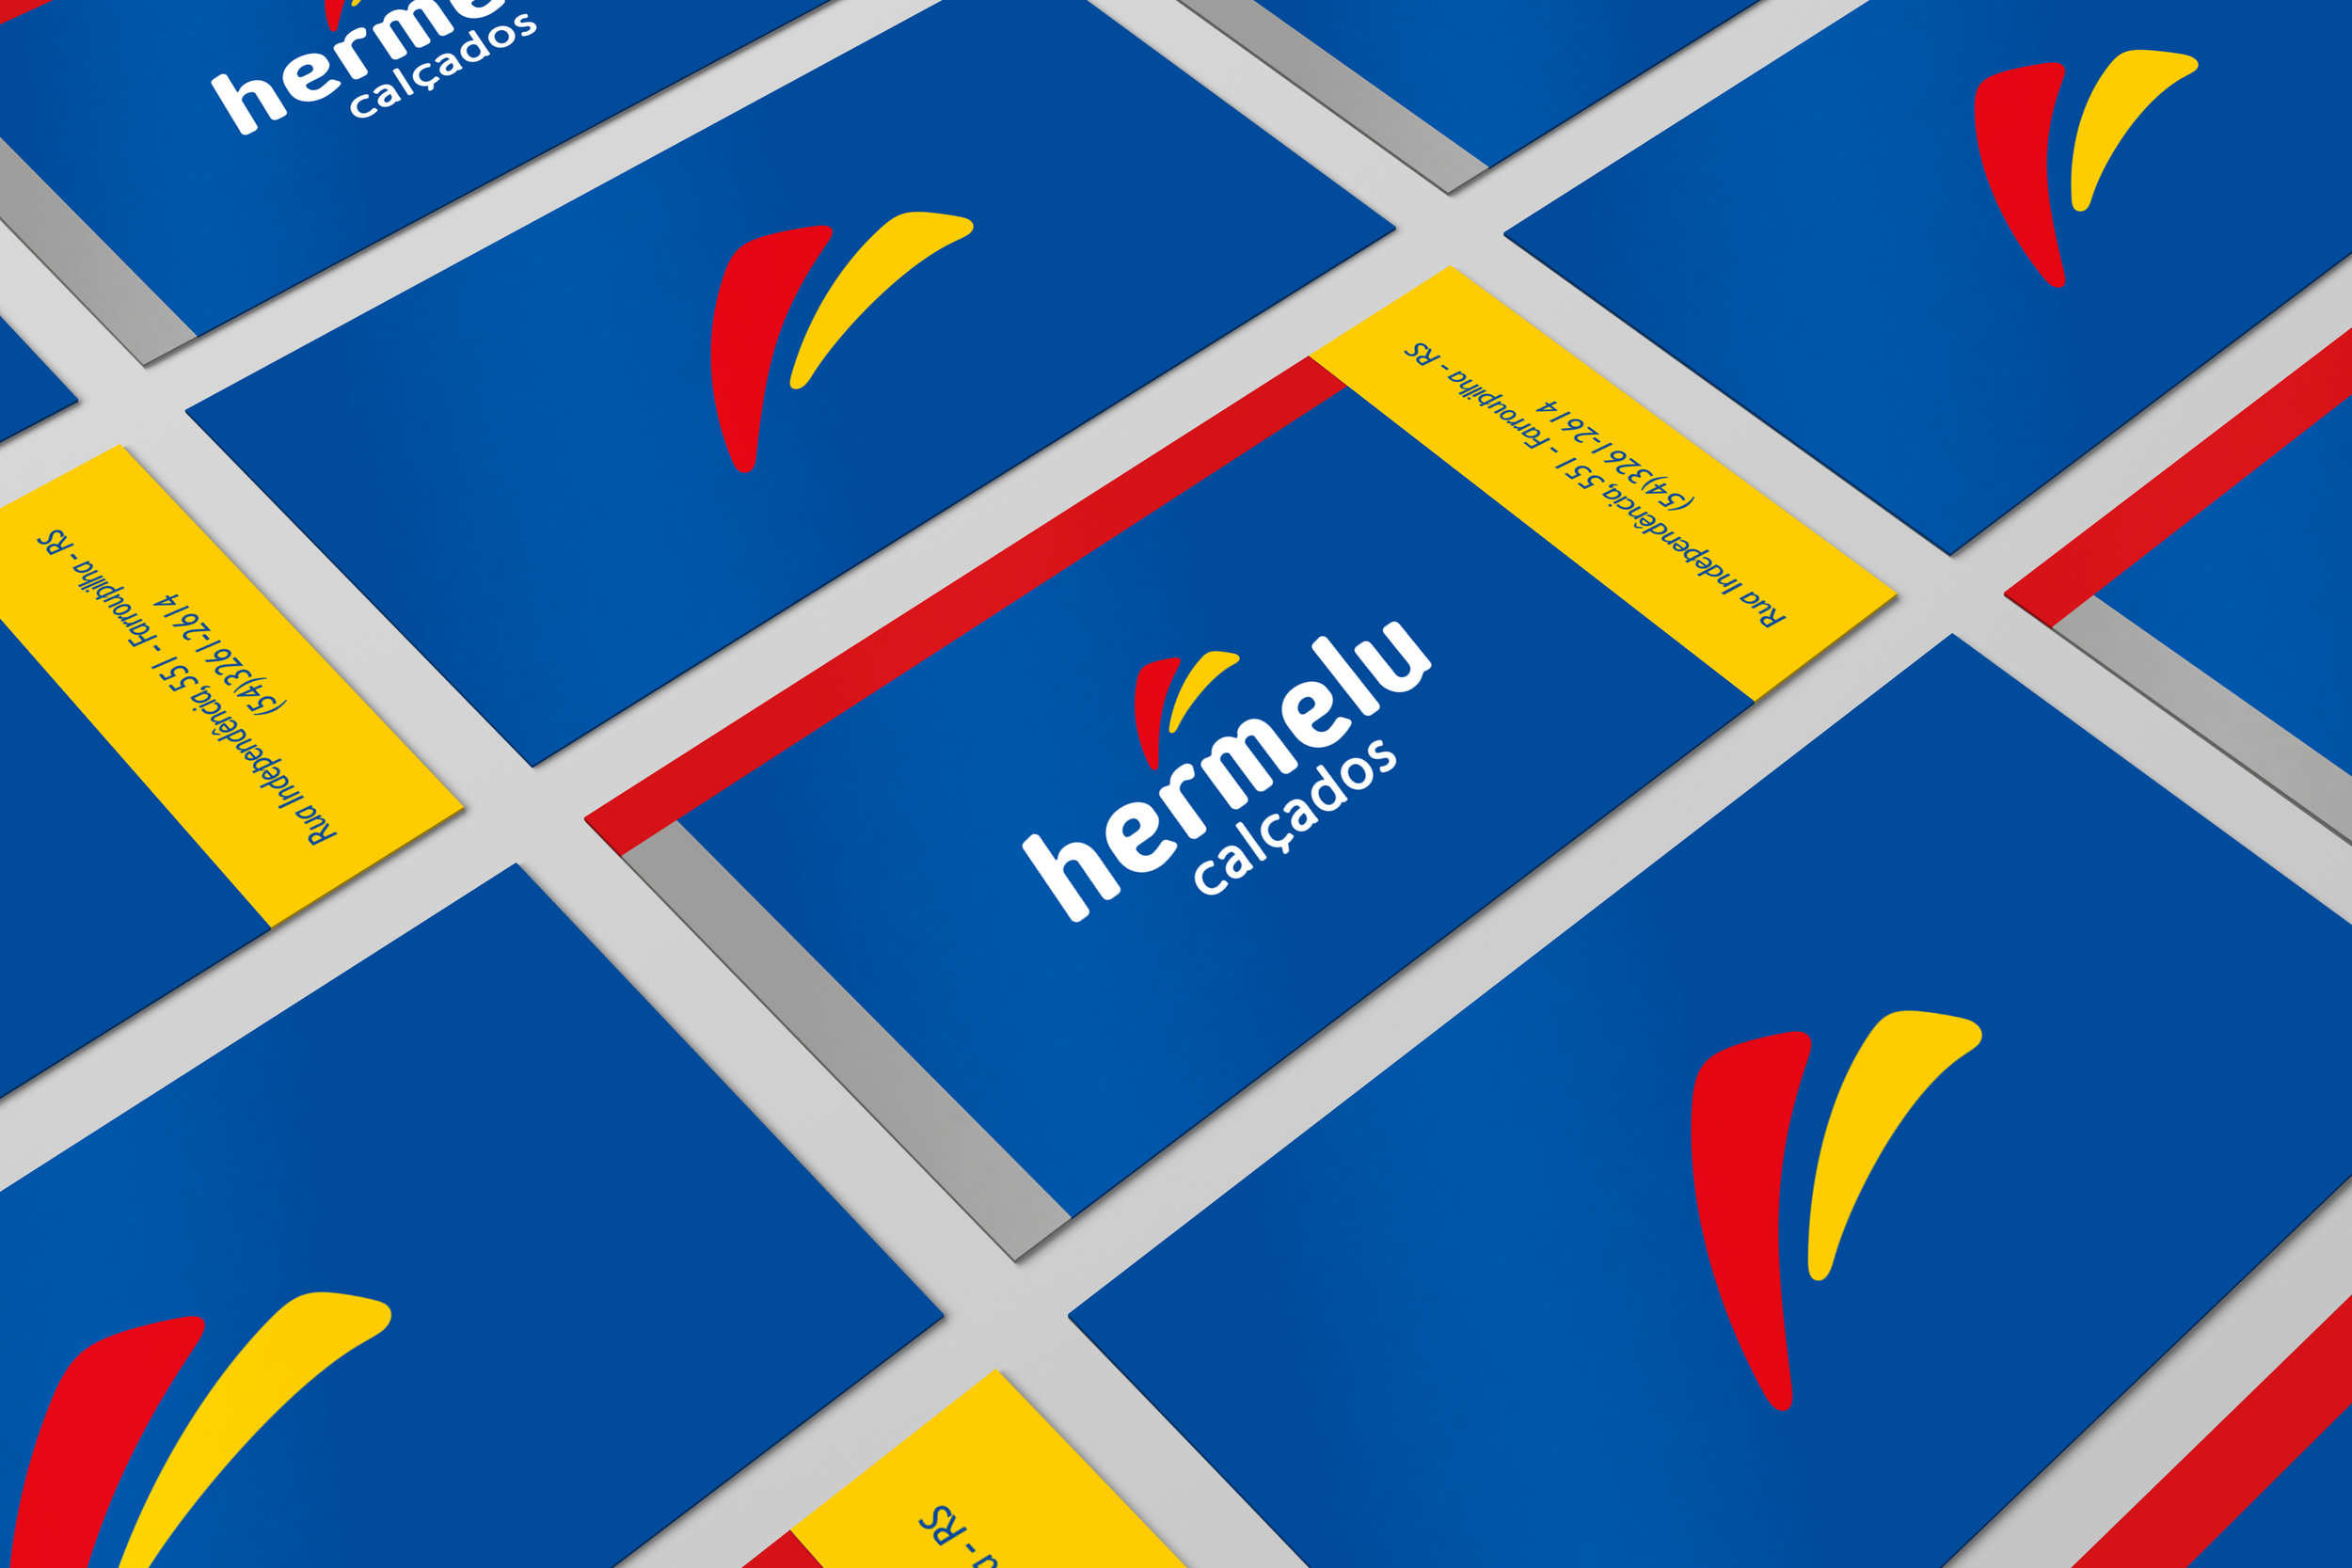 business card mockup_3_HERM.jpg